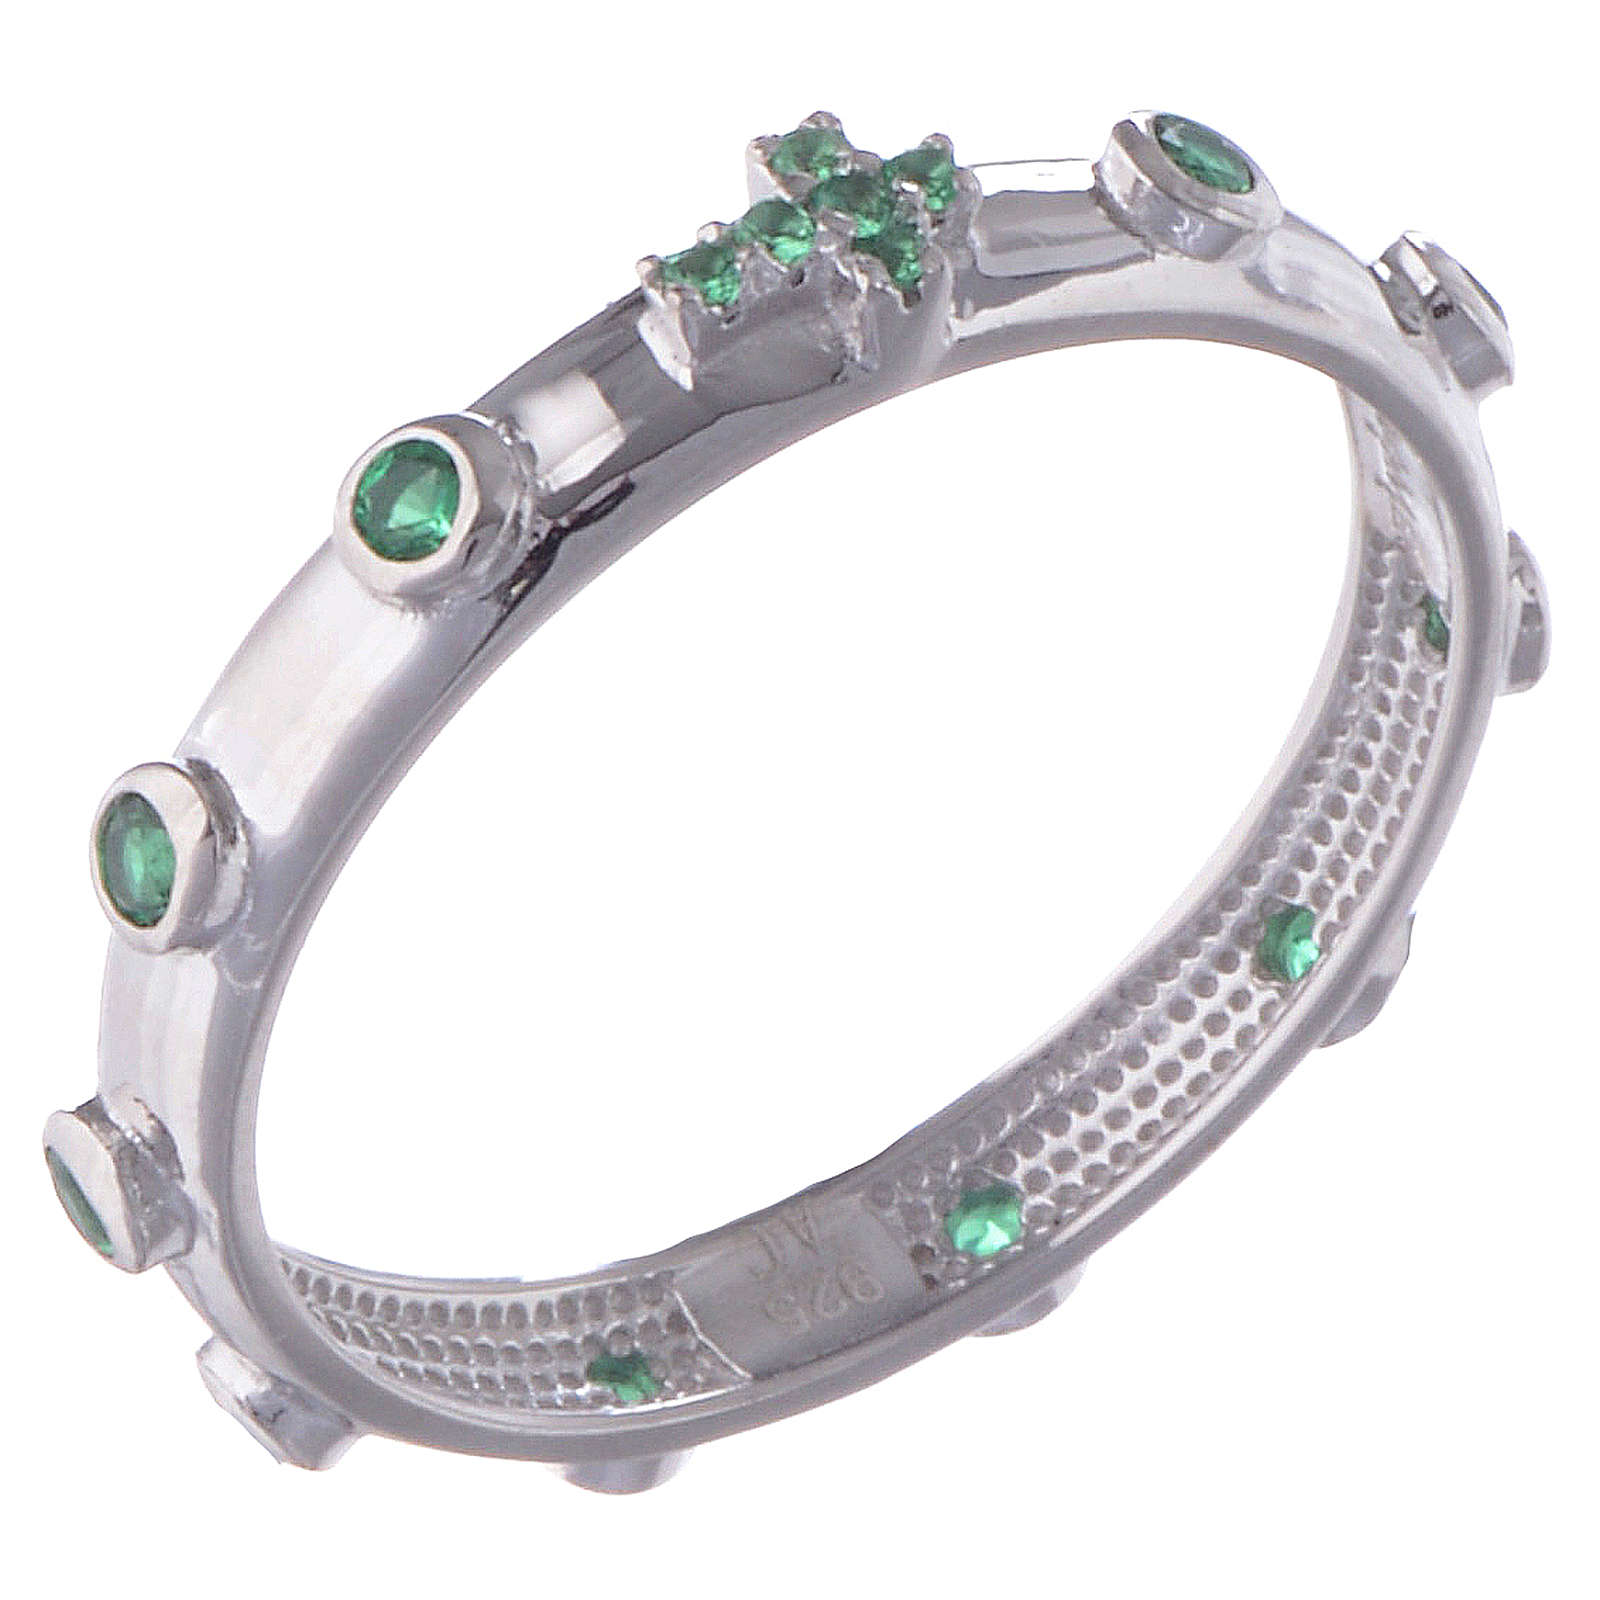 Rosary Ring AMEN rhodium-plated silver 925, green zircons 3